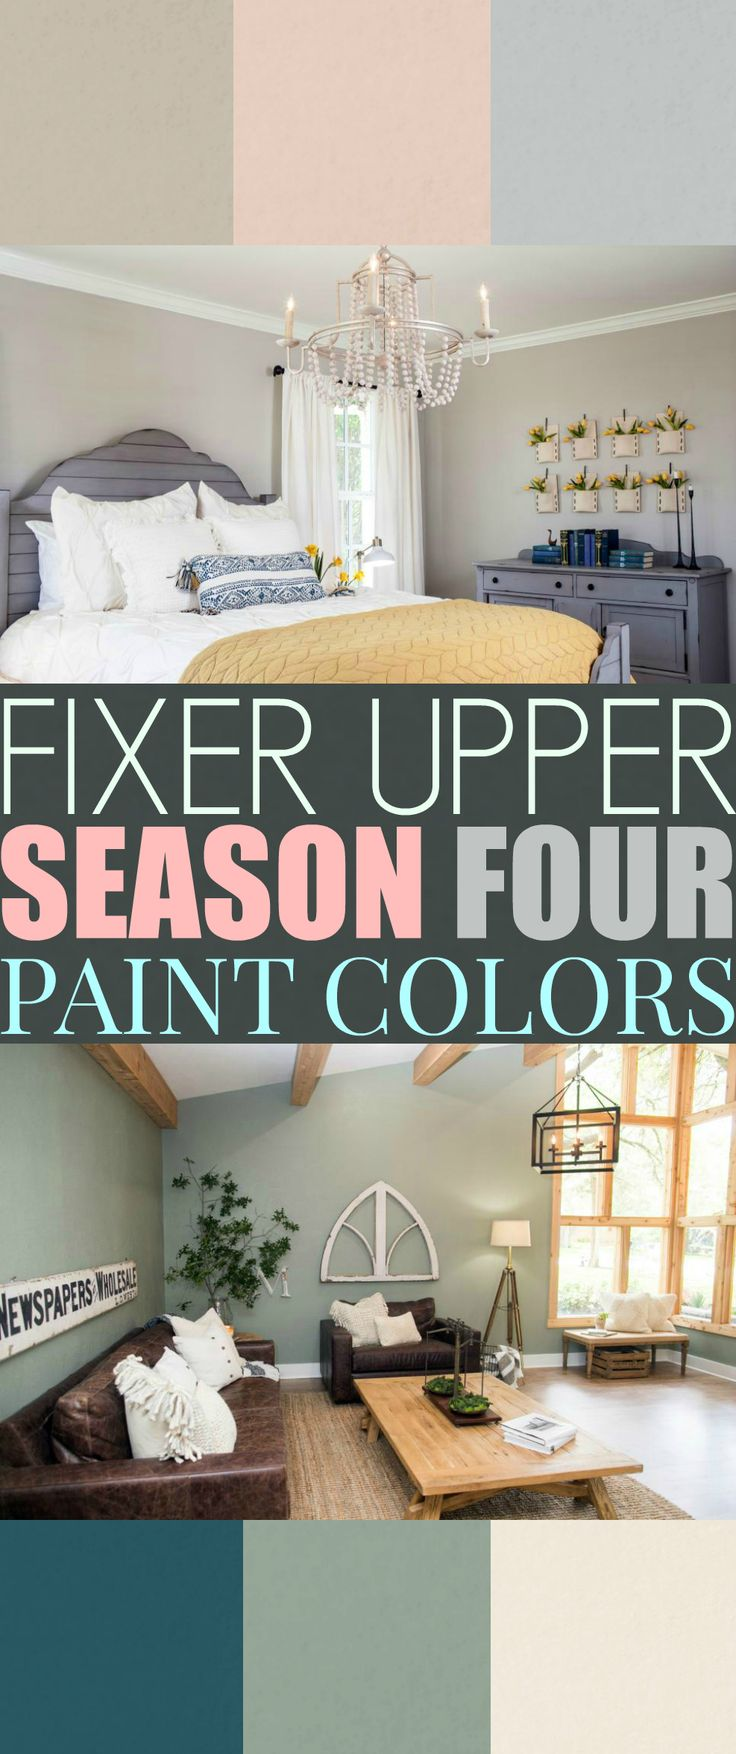 Fixer Upper Season 4 Paint Colors. Season 4 of Fixer Upper is out! And Joanna is using every opportunity to showcase her new paint line!